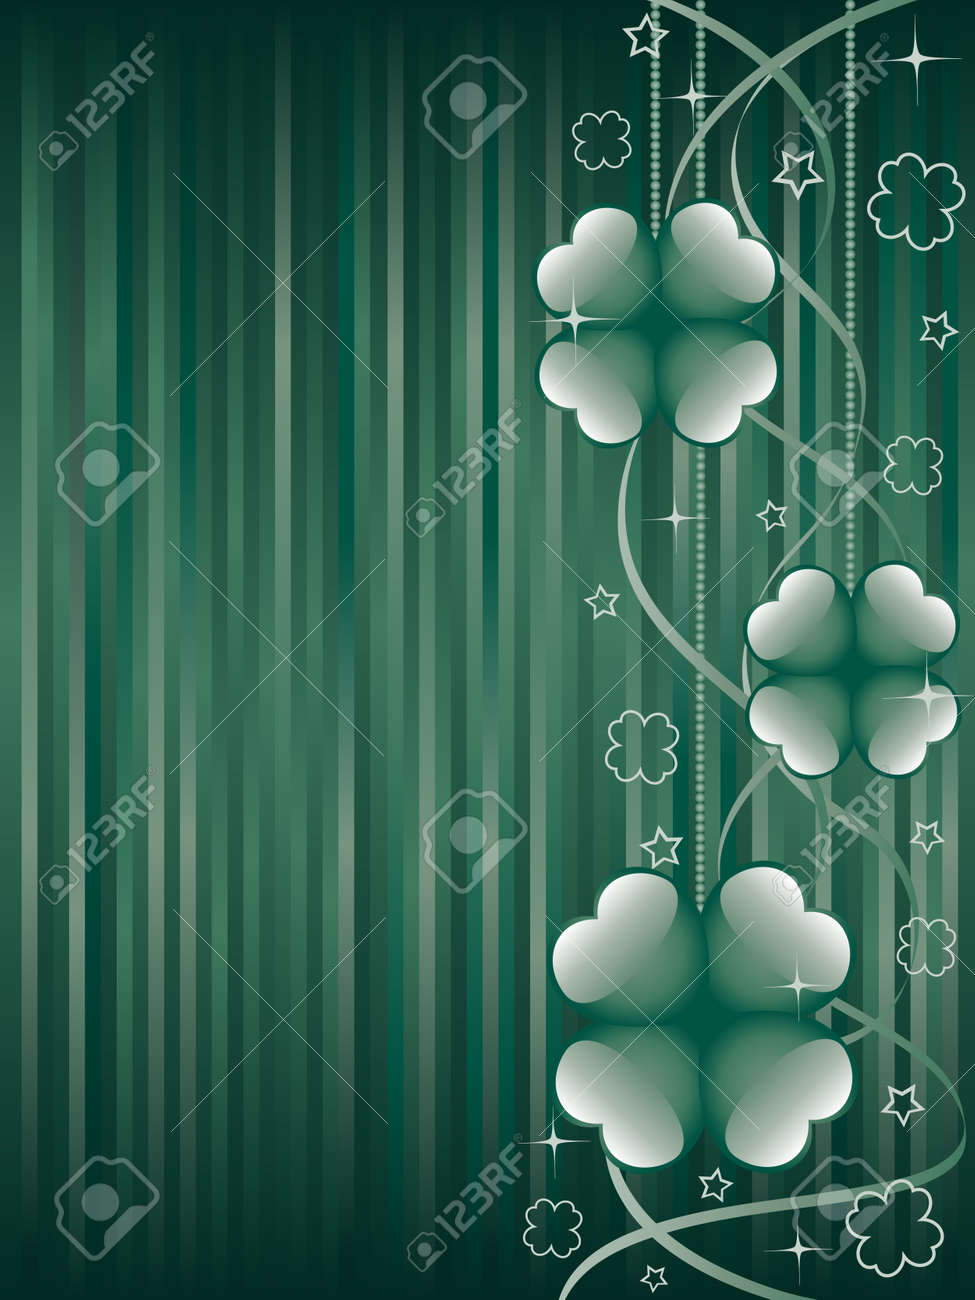 St. Patrick's day background. Stock Vector - 6289181